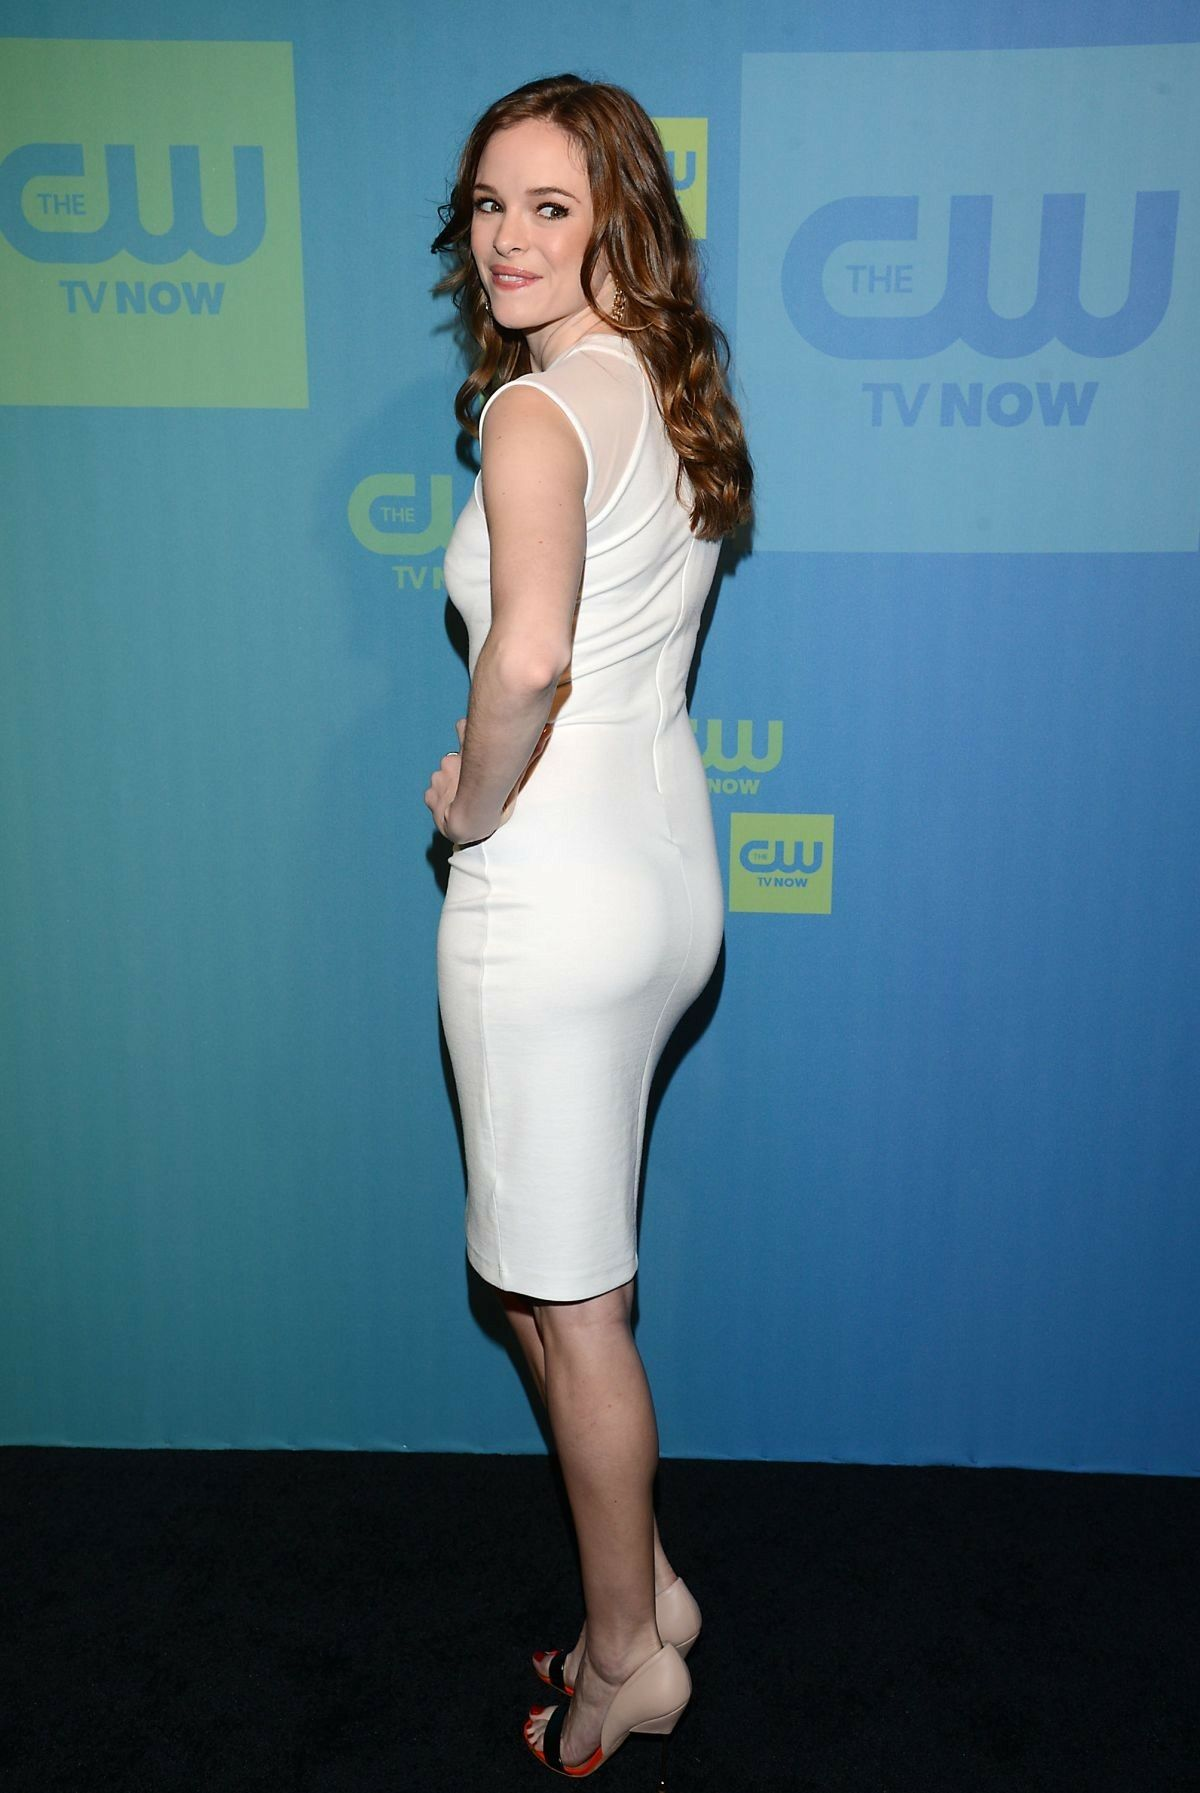 Danielle Panabaker | dress to impress | Pinterest | Danielle panabaker